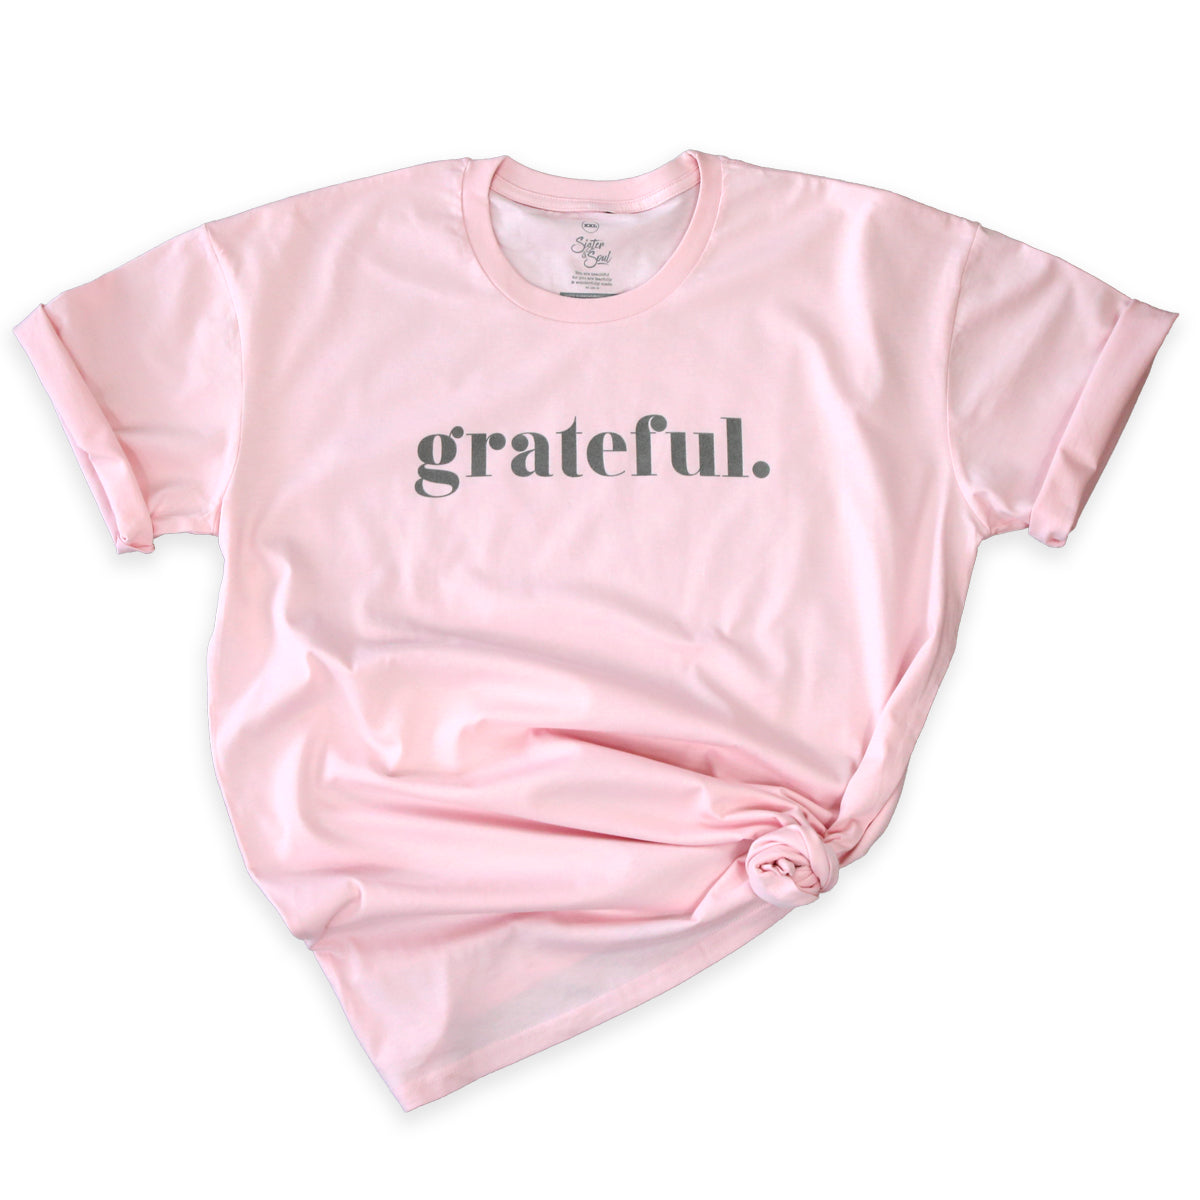 GRATEFUL - Pink Long Boxy Plus Size Tee - Charcoal Shimmer Print